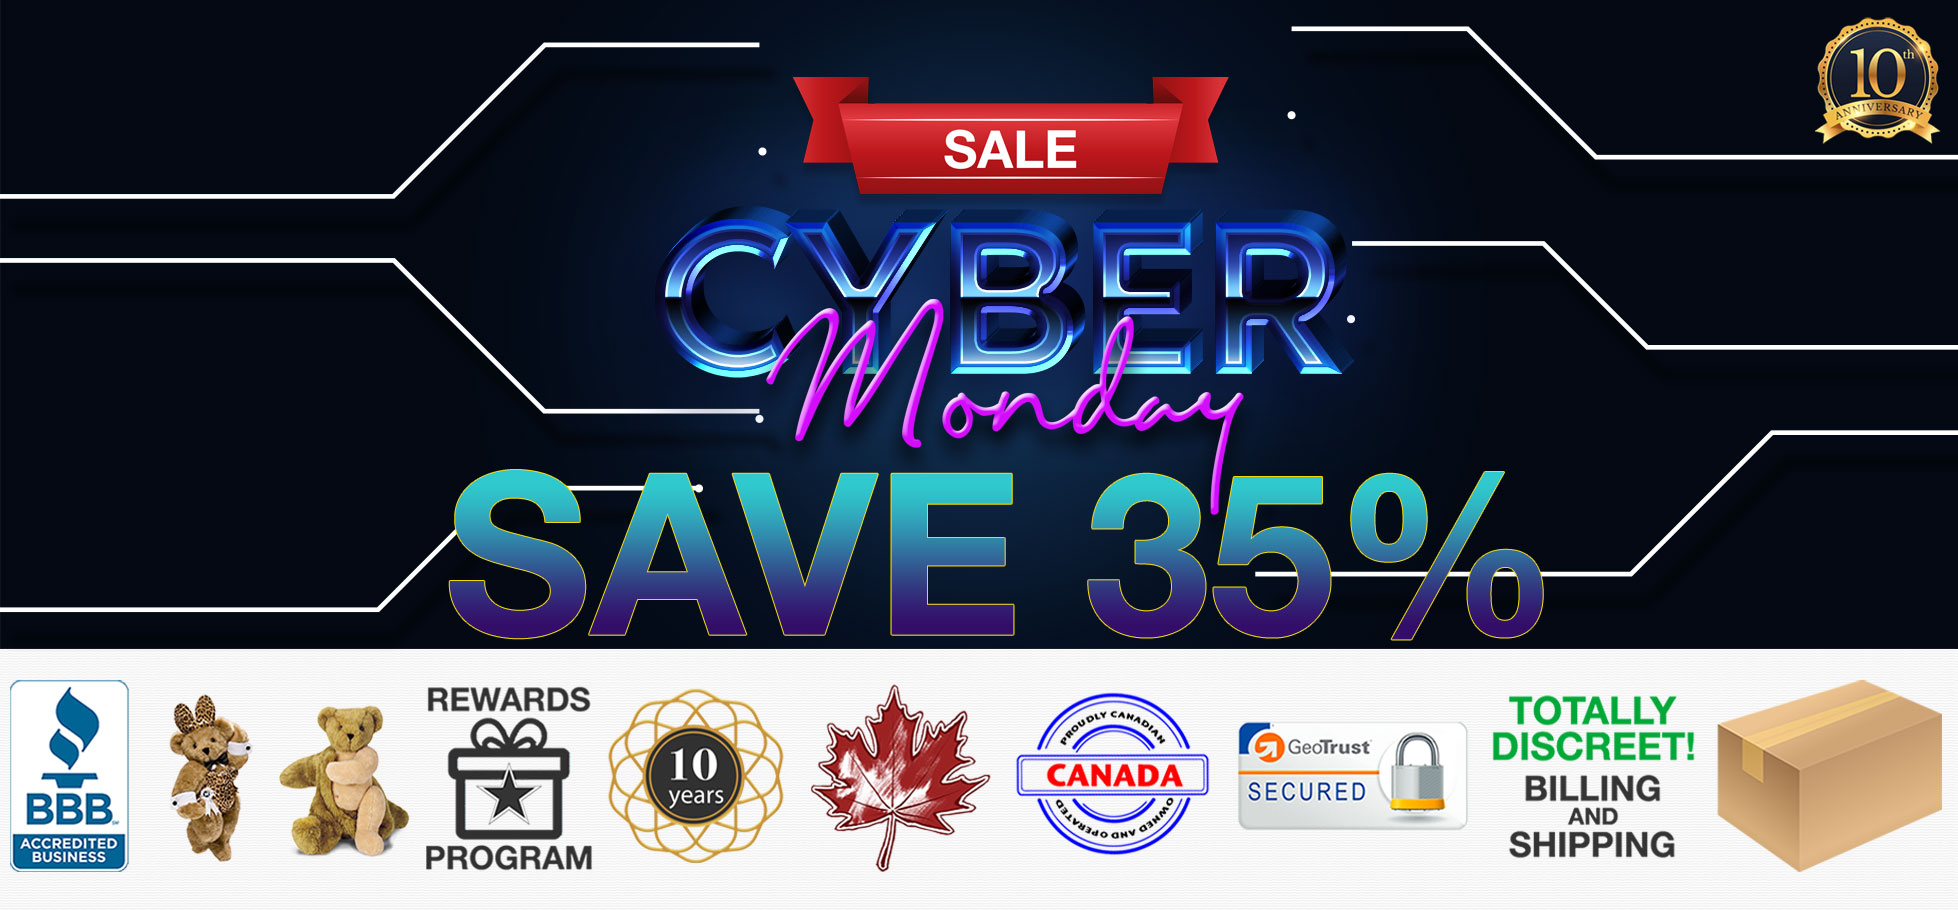 Bed Time Toys, Cyber Monday Sex Toy Sale, Sex Toys Canada